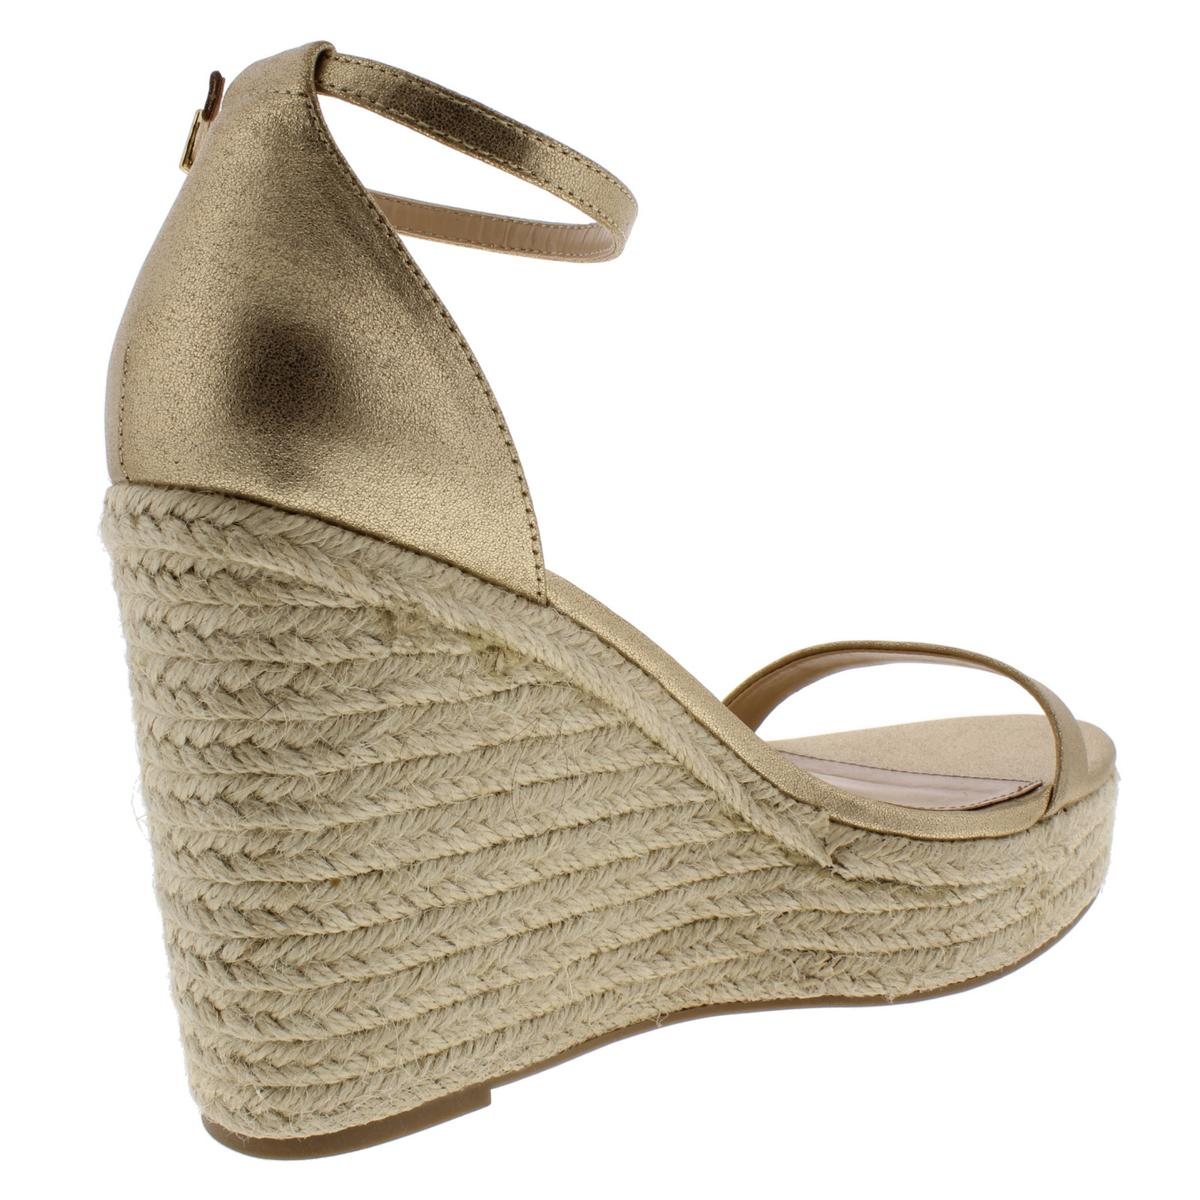 Steve-Madden-Womens-Survive-Padded-Insole-Espadrille-Wedges-Shoes-BHFO-5902 thumbnail 6